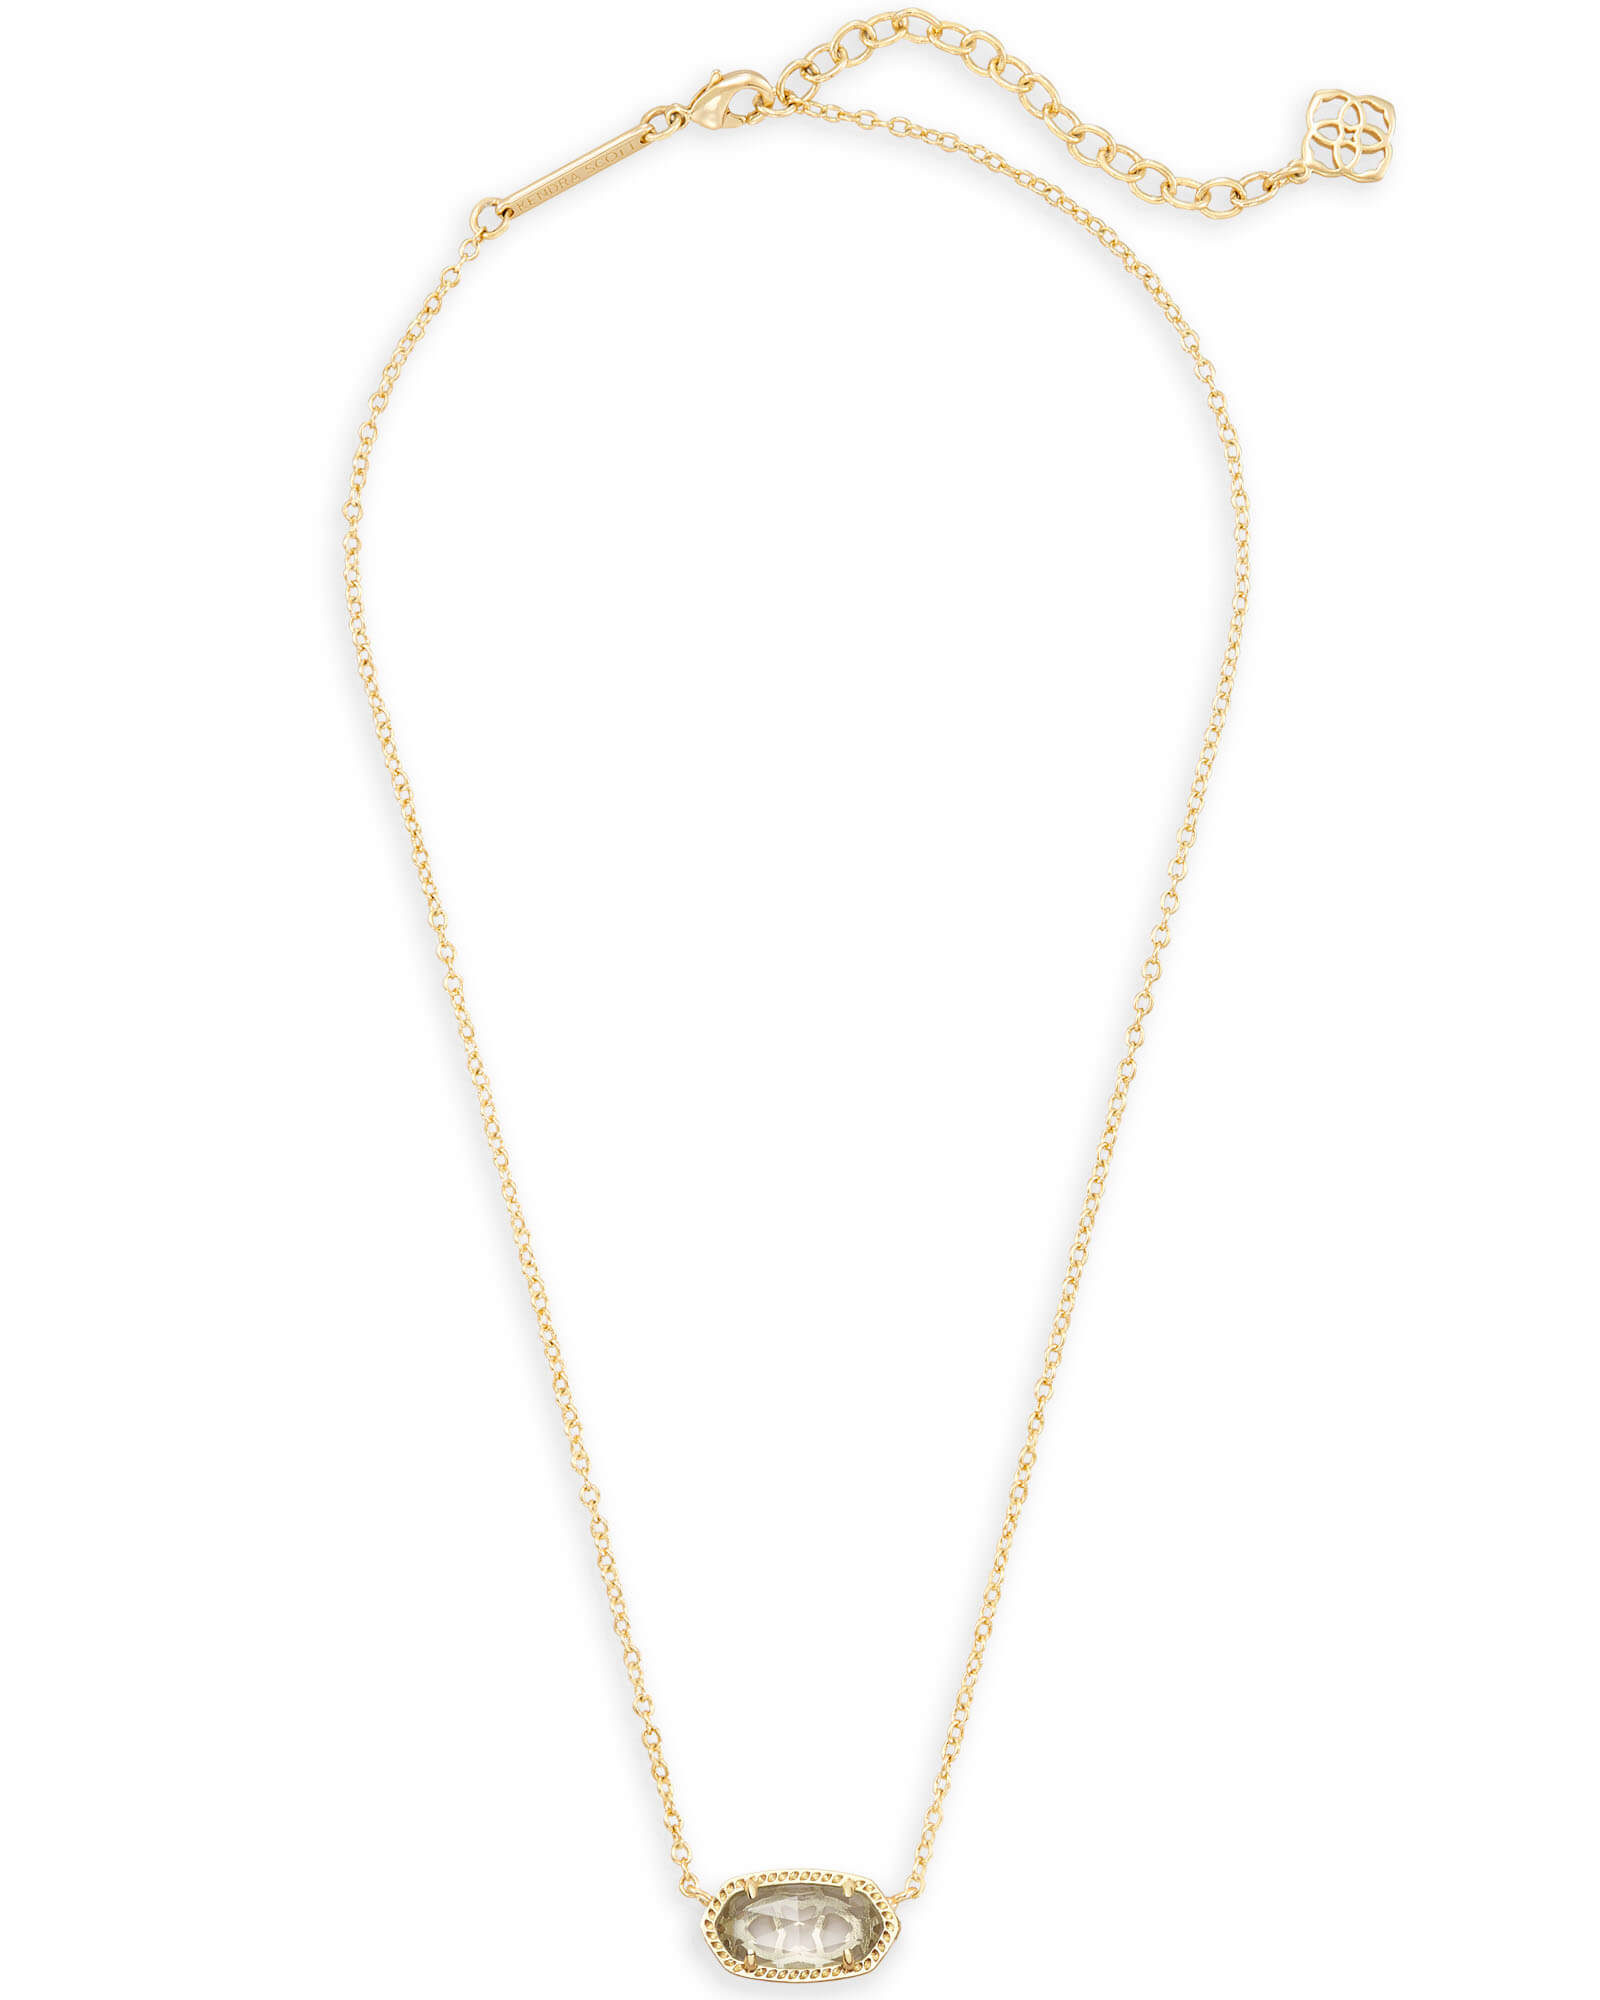 Elisa Gold Pendant Necklace In Clear | Kendra Scott In 2020 Rock Crystal April Droplet Pendant Necklaces (View 10 of 25)